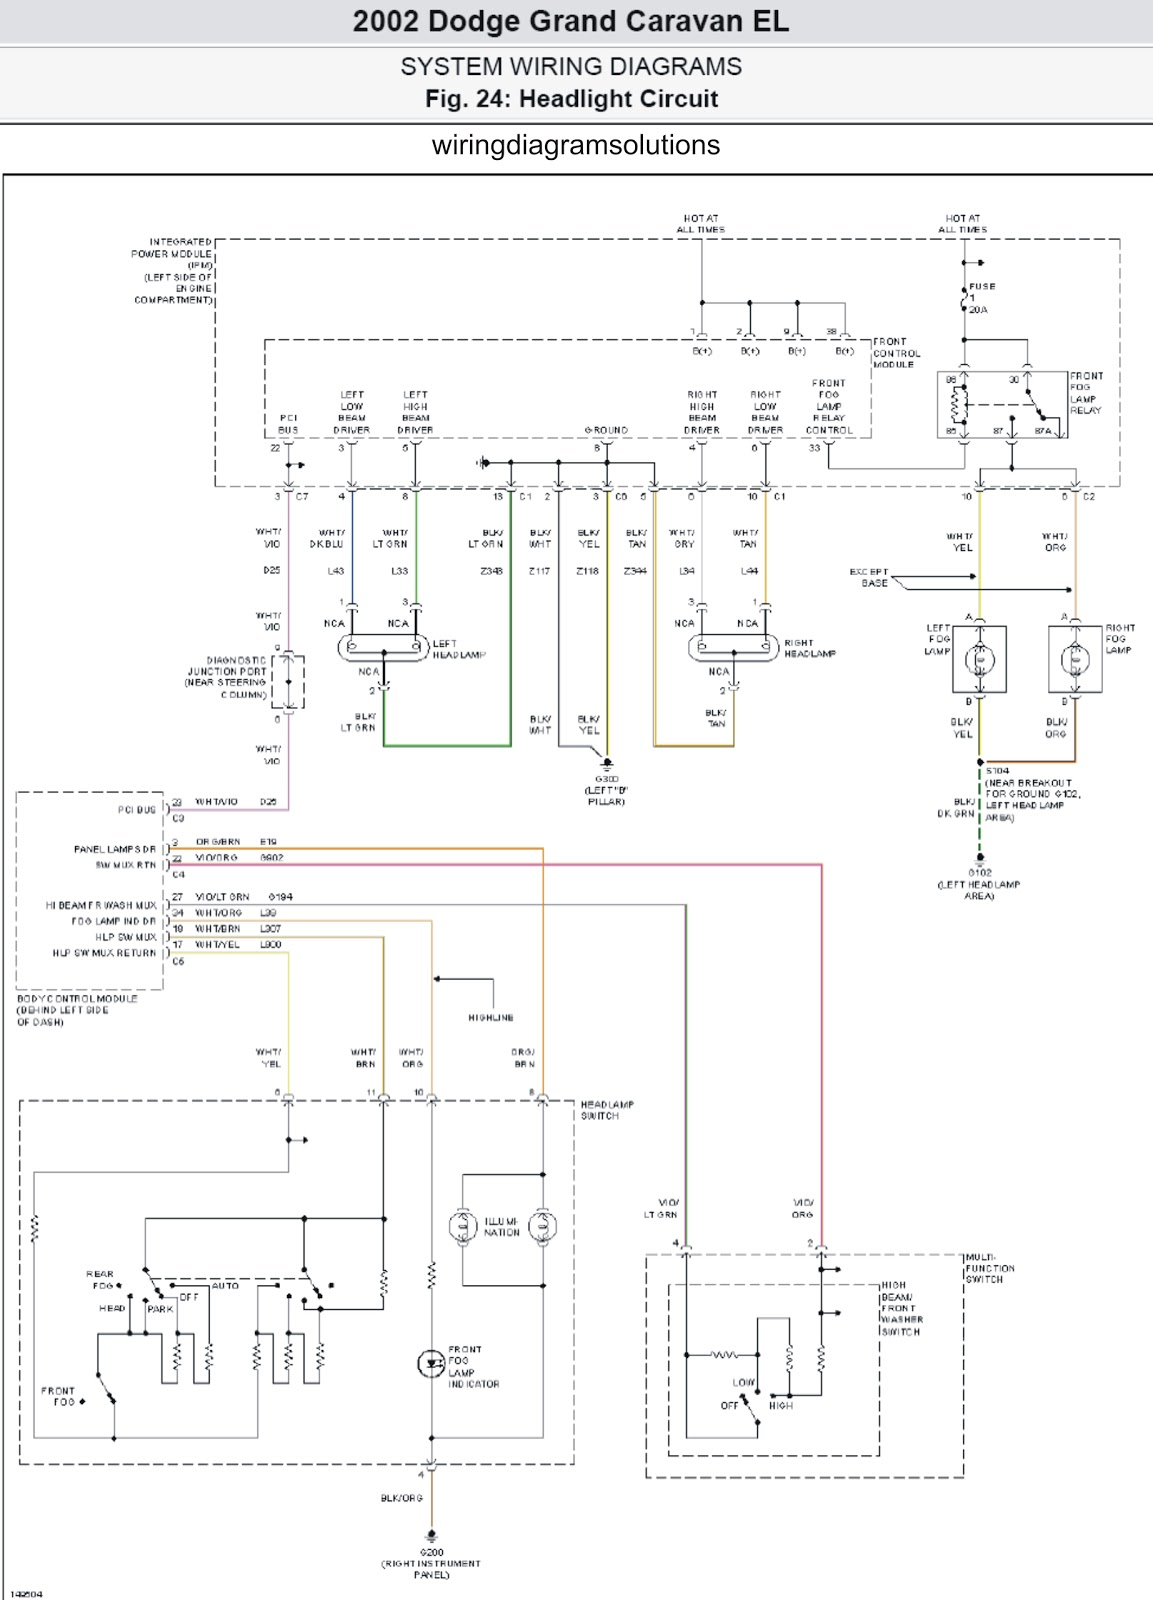 2004 Dodge Caravan Wiring Diagram Data 1999 Ram 2013 Diagrams Schematic 2003 2500